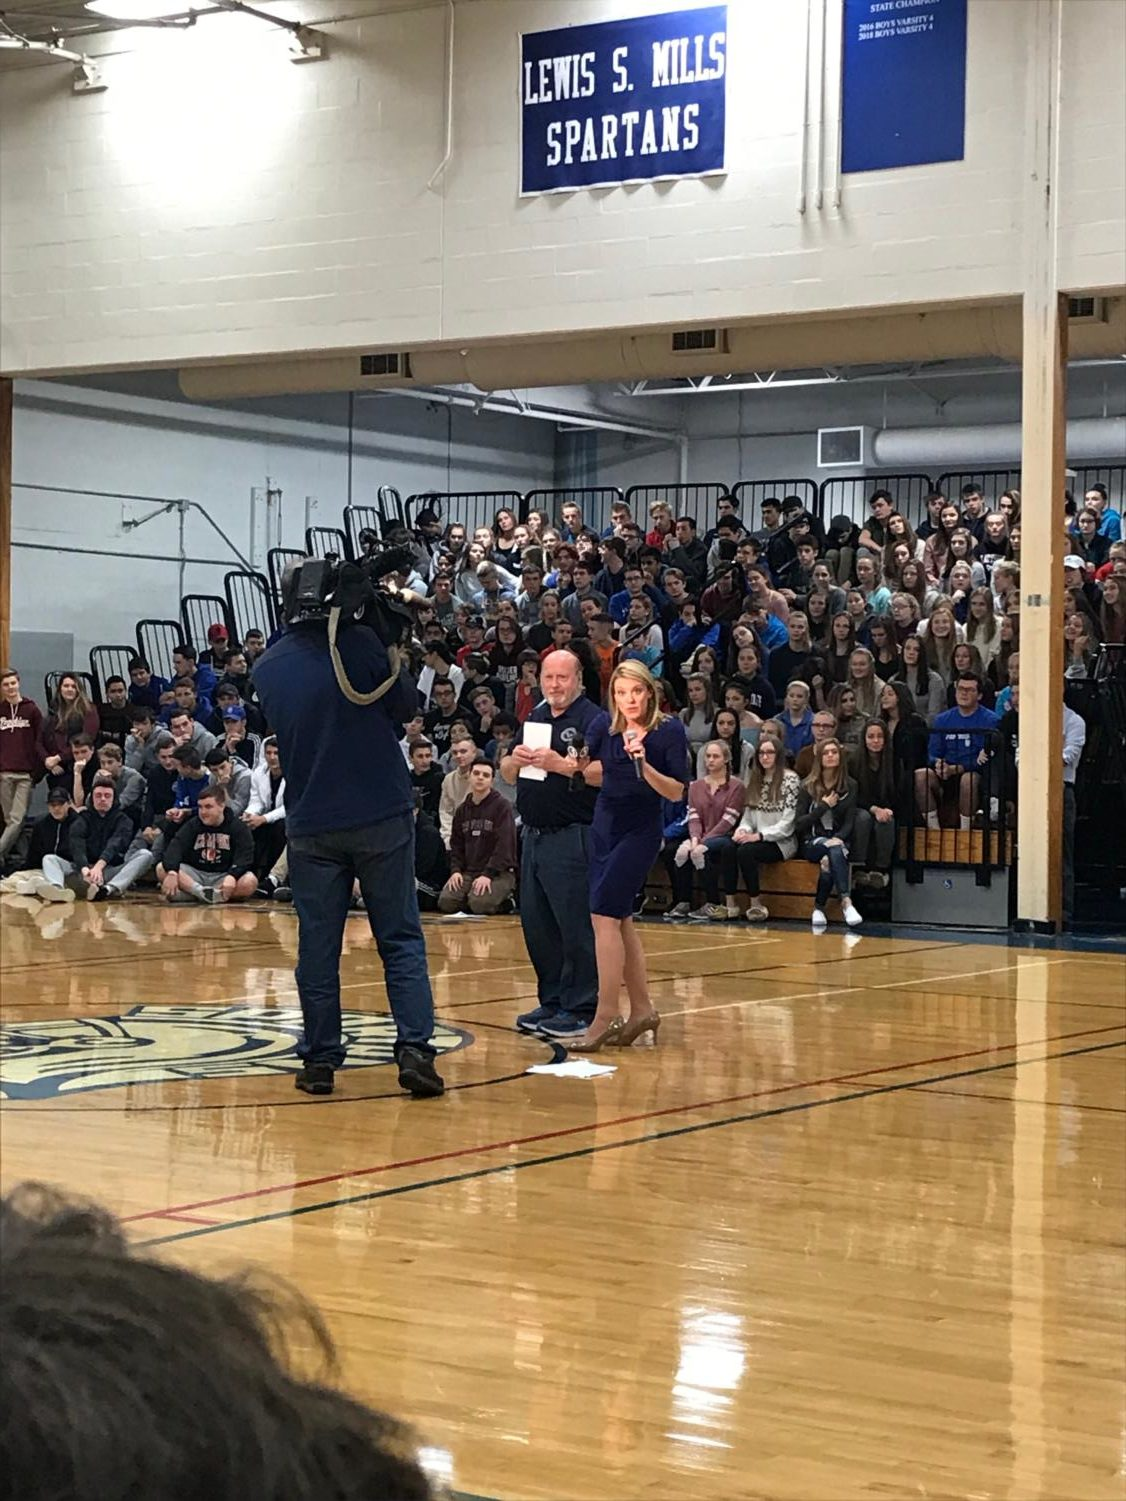 A reporter from WFSB Channel 3's Surprise Squad announced a special honor for LSM custodian Lowell Wortman last week in front of the entire school. The segment airs Dec. 6 at 5:30 p.m.